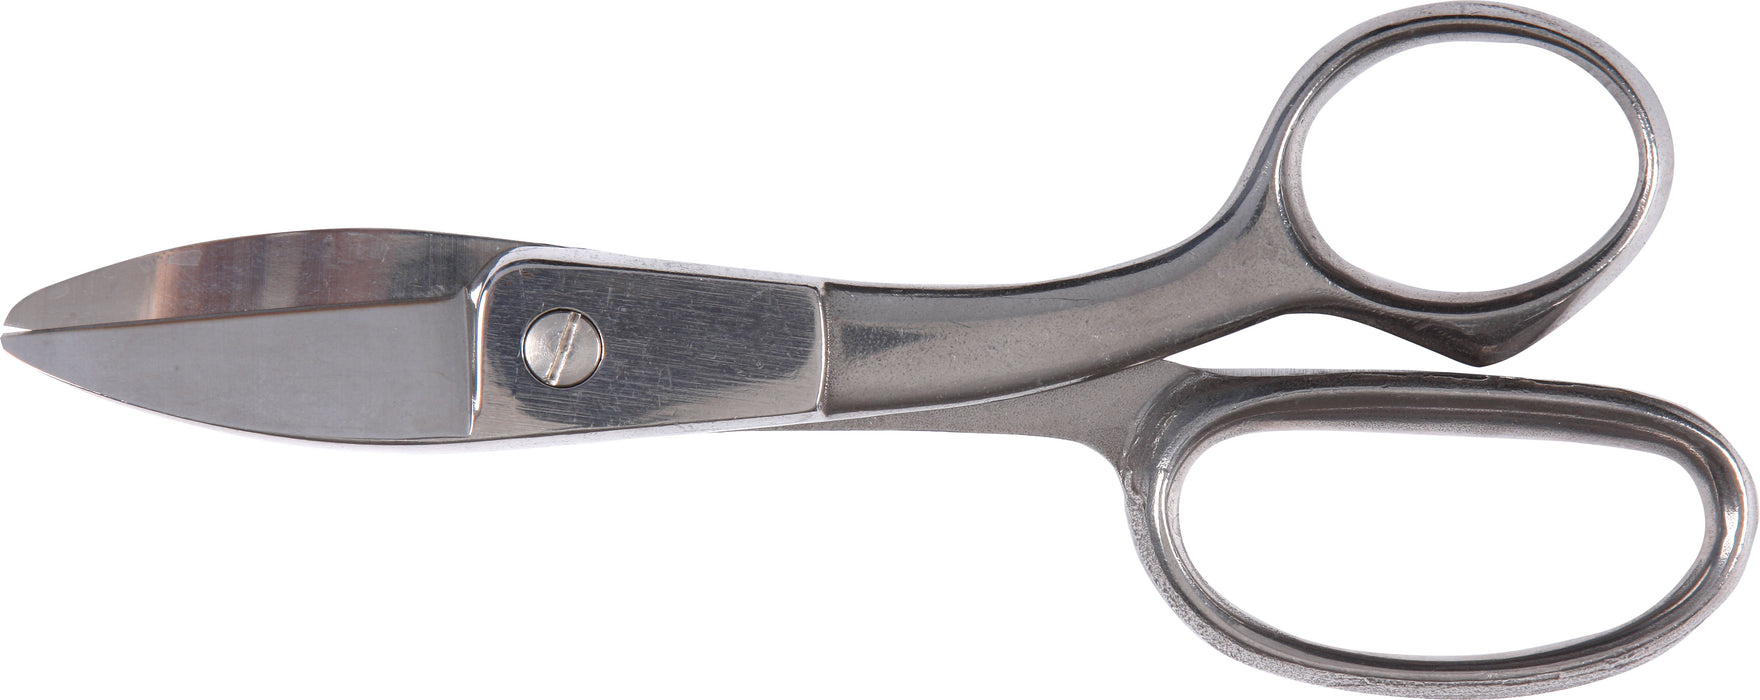 "Wolff® 775 7 1/2"" Poultry Scissors - Stainless Steel Shears"